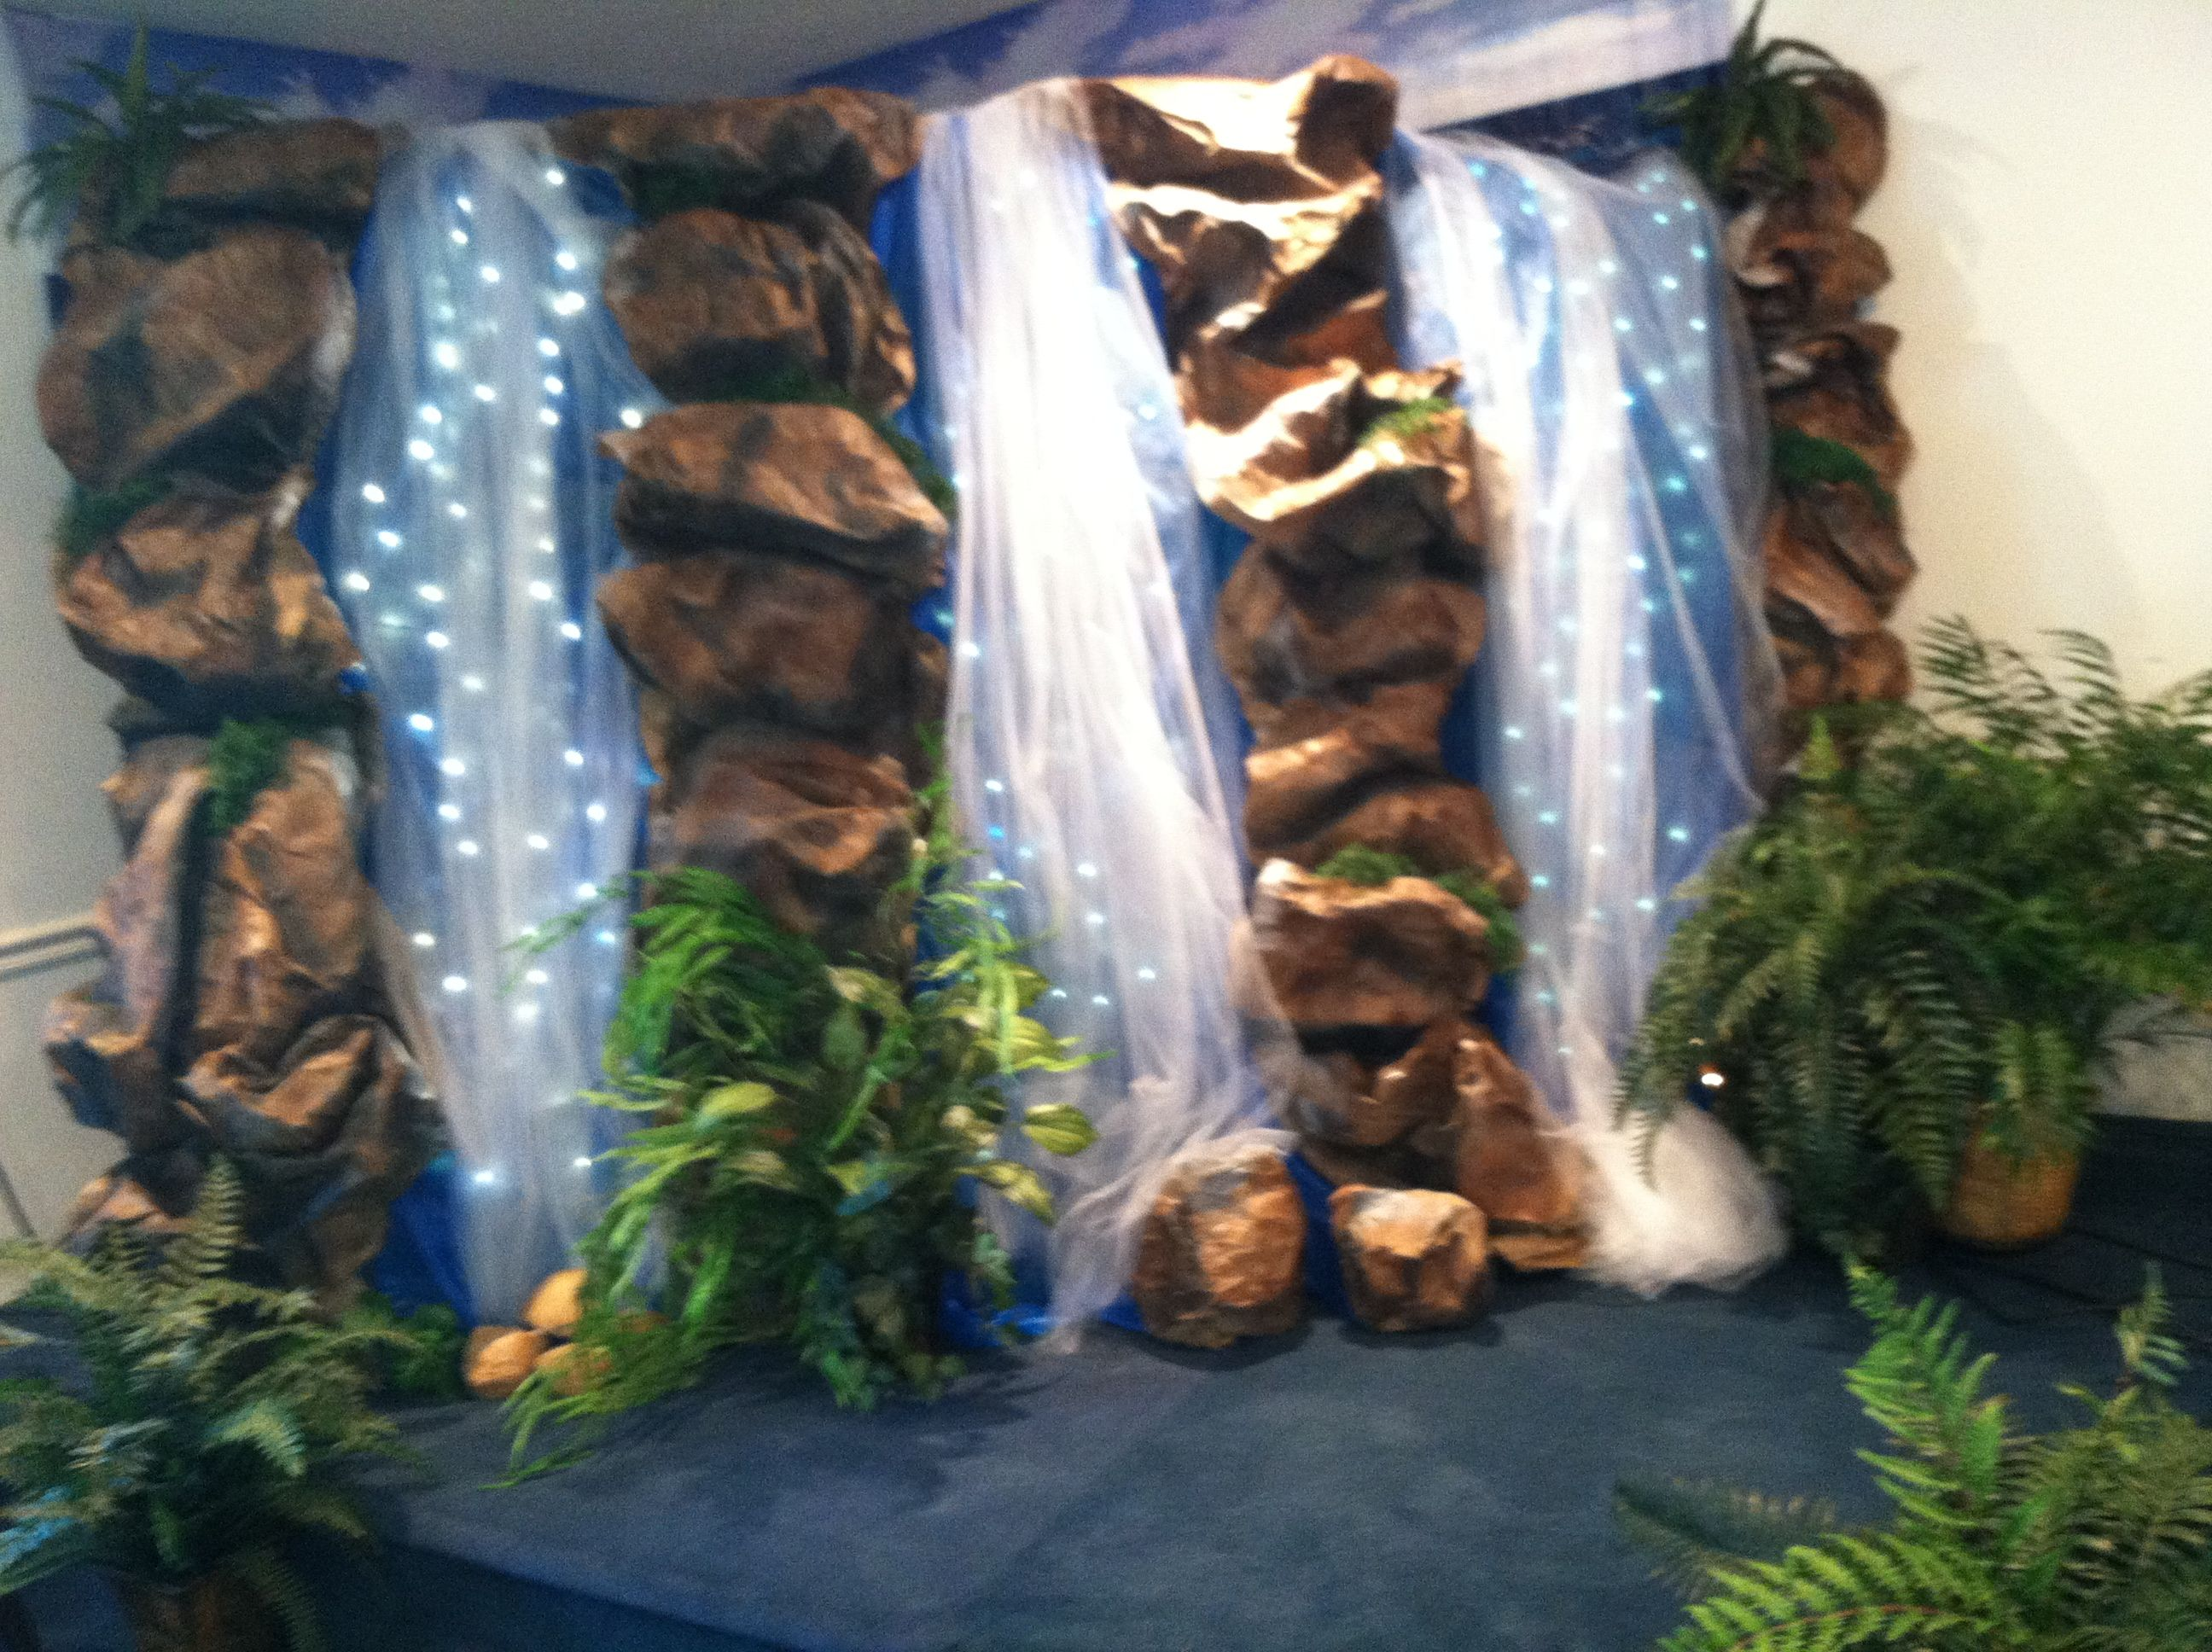 Paper Mache Ideas For Home Decor Indoor Waterfall 2013 Home Decor Favs Pinterest